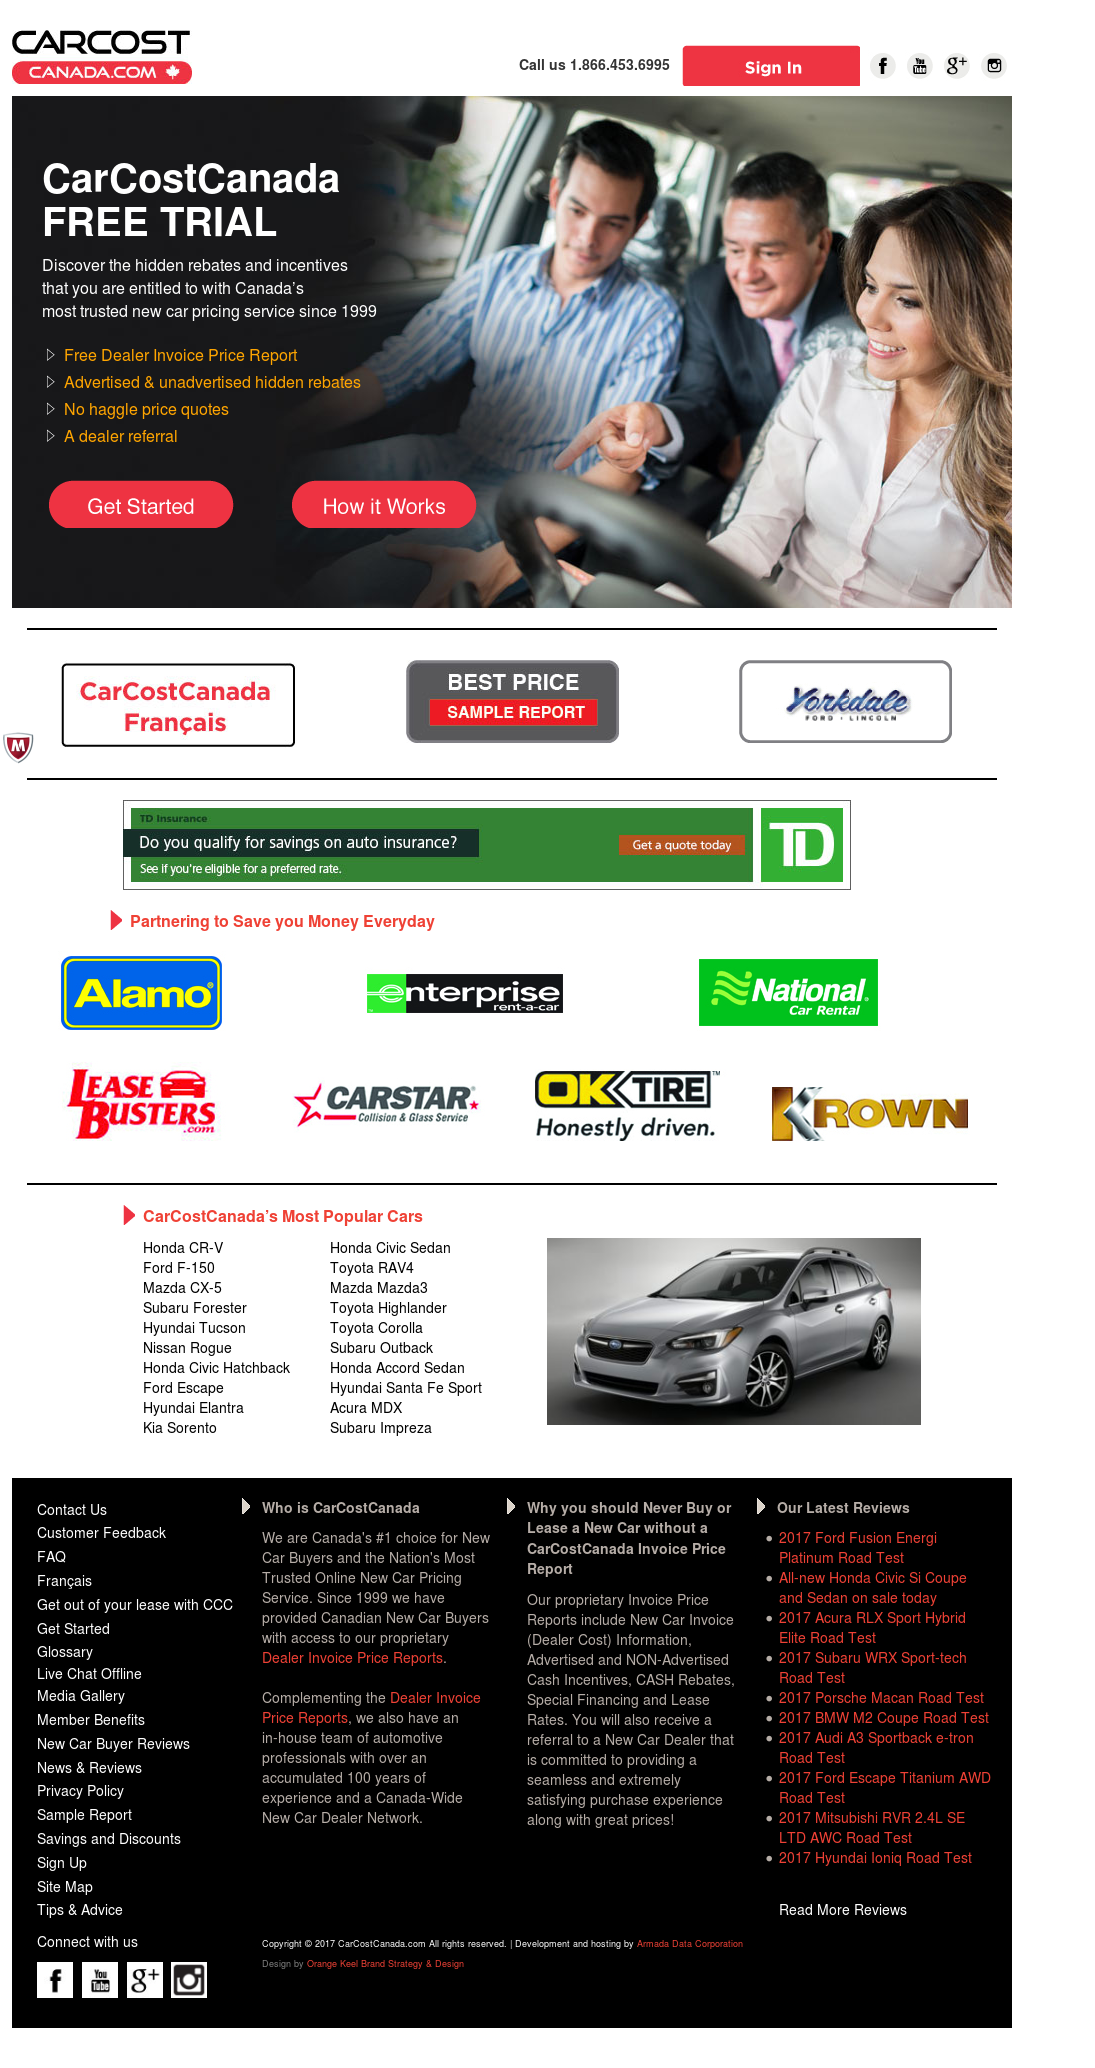 CarCostCanada Competitors, Revenue and Employees - Owler